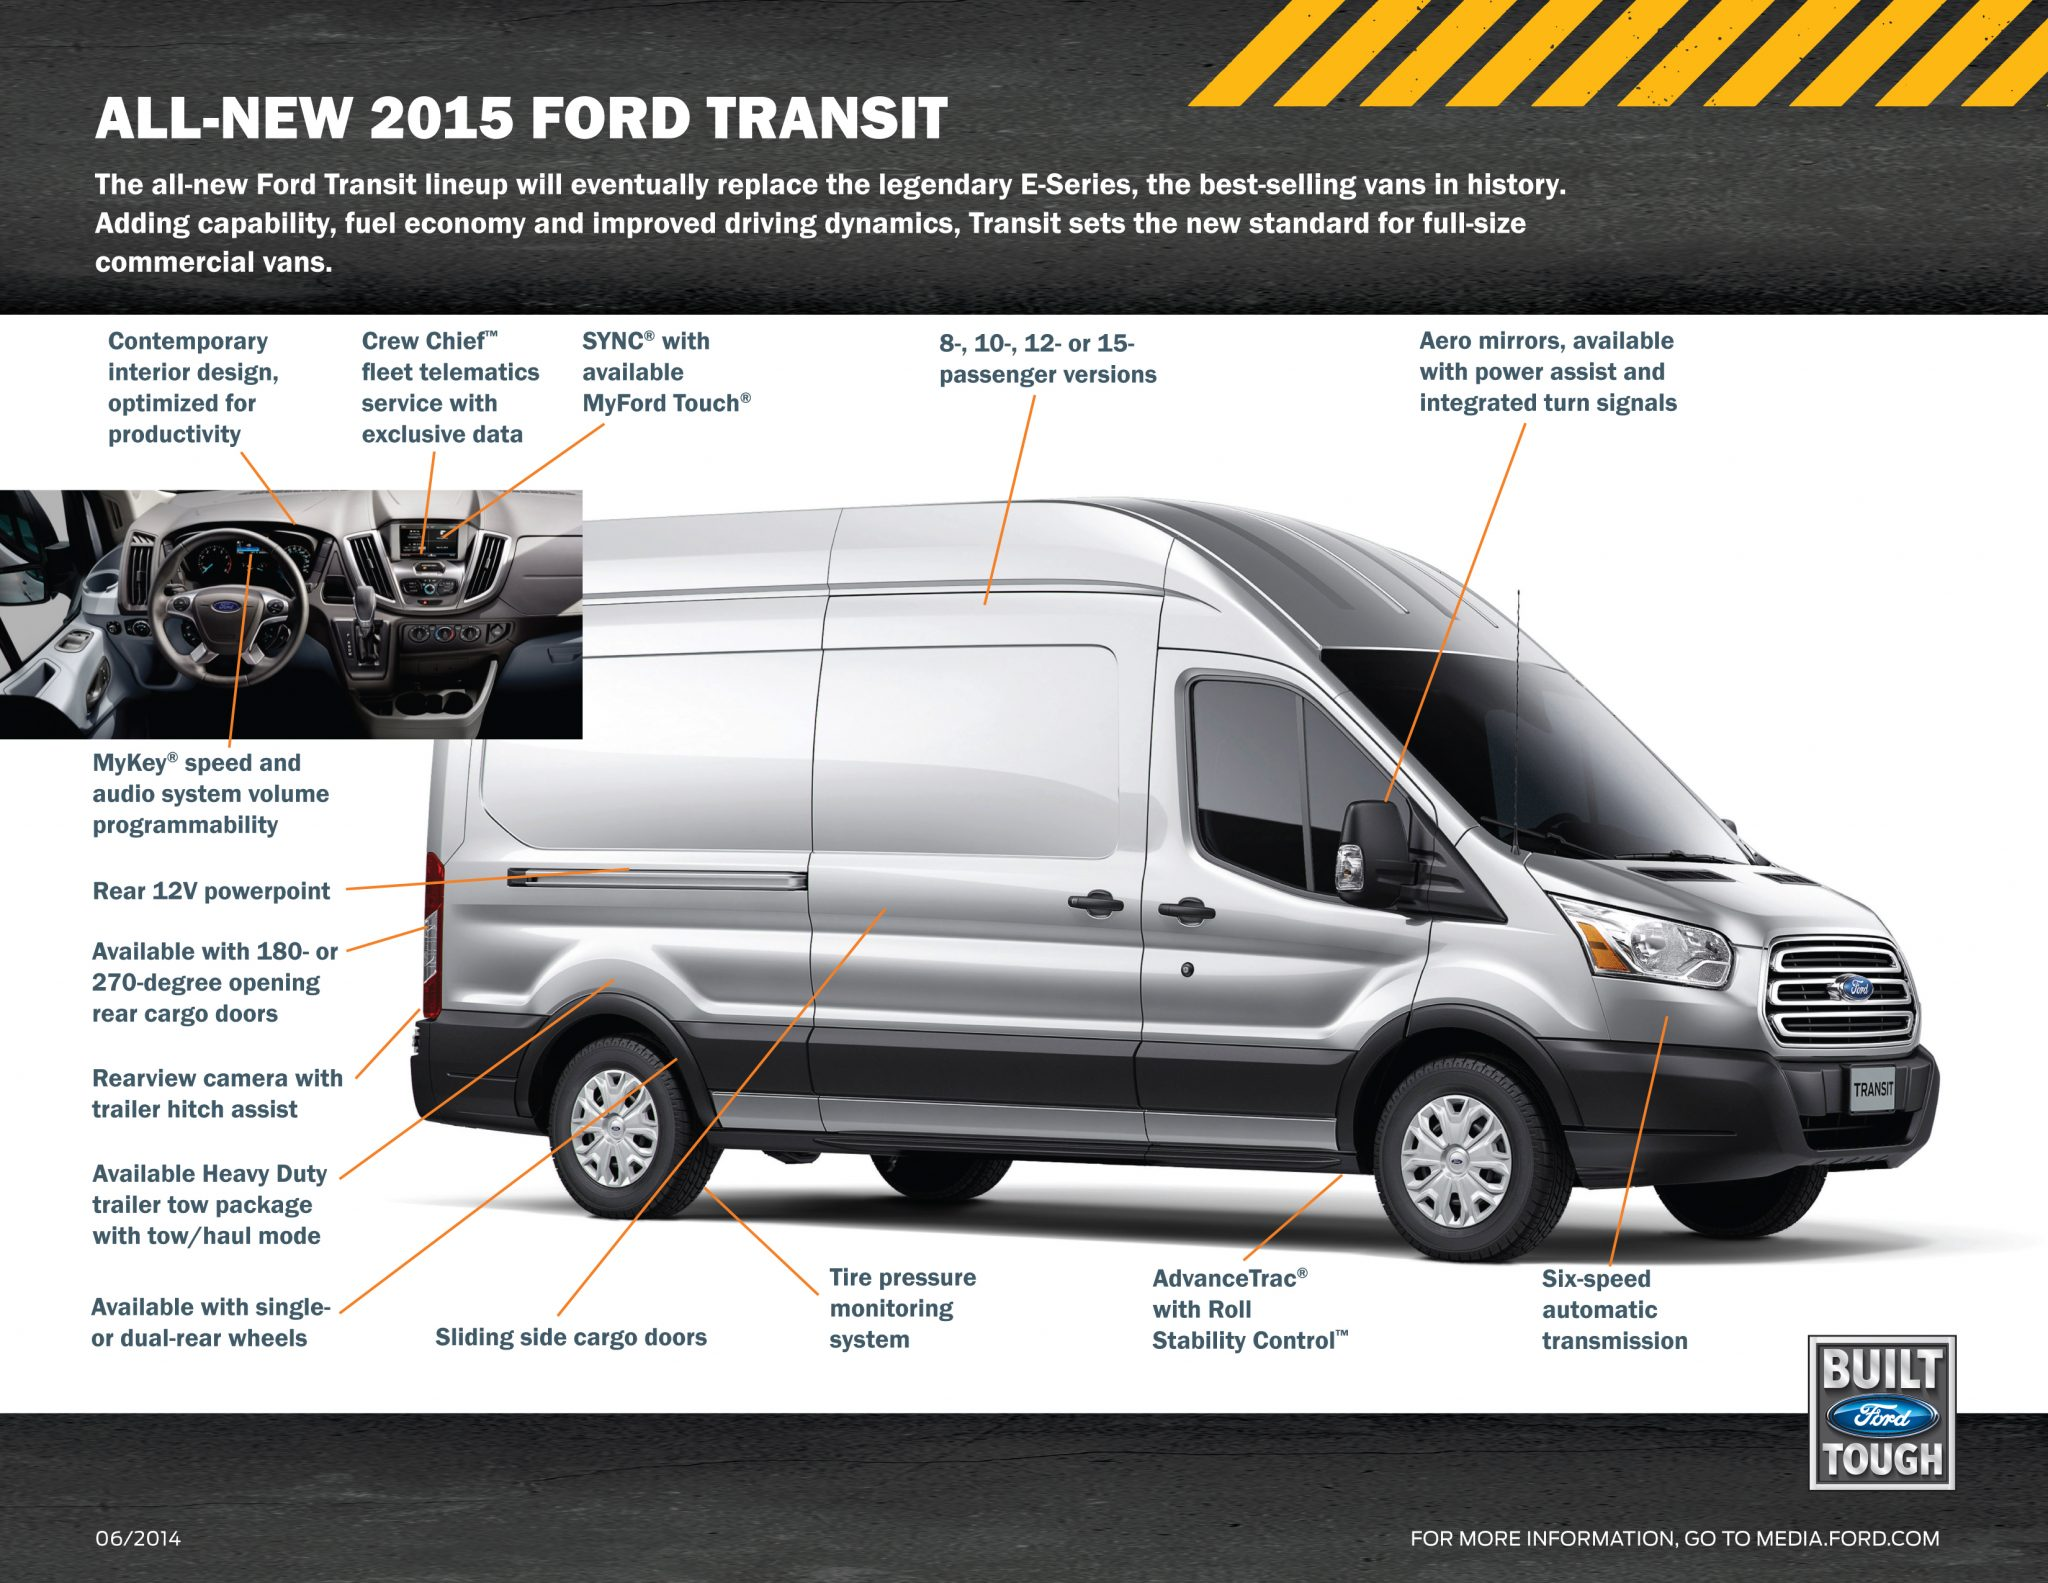 2015 Ford Transit is Best-in-Class in a Ton of Ways - The ...